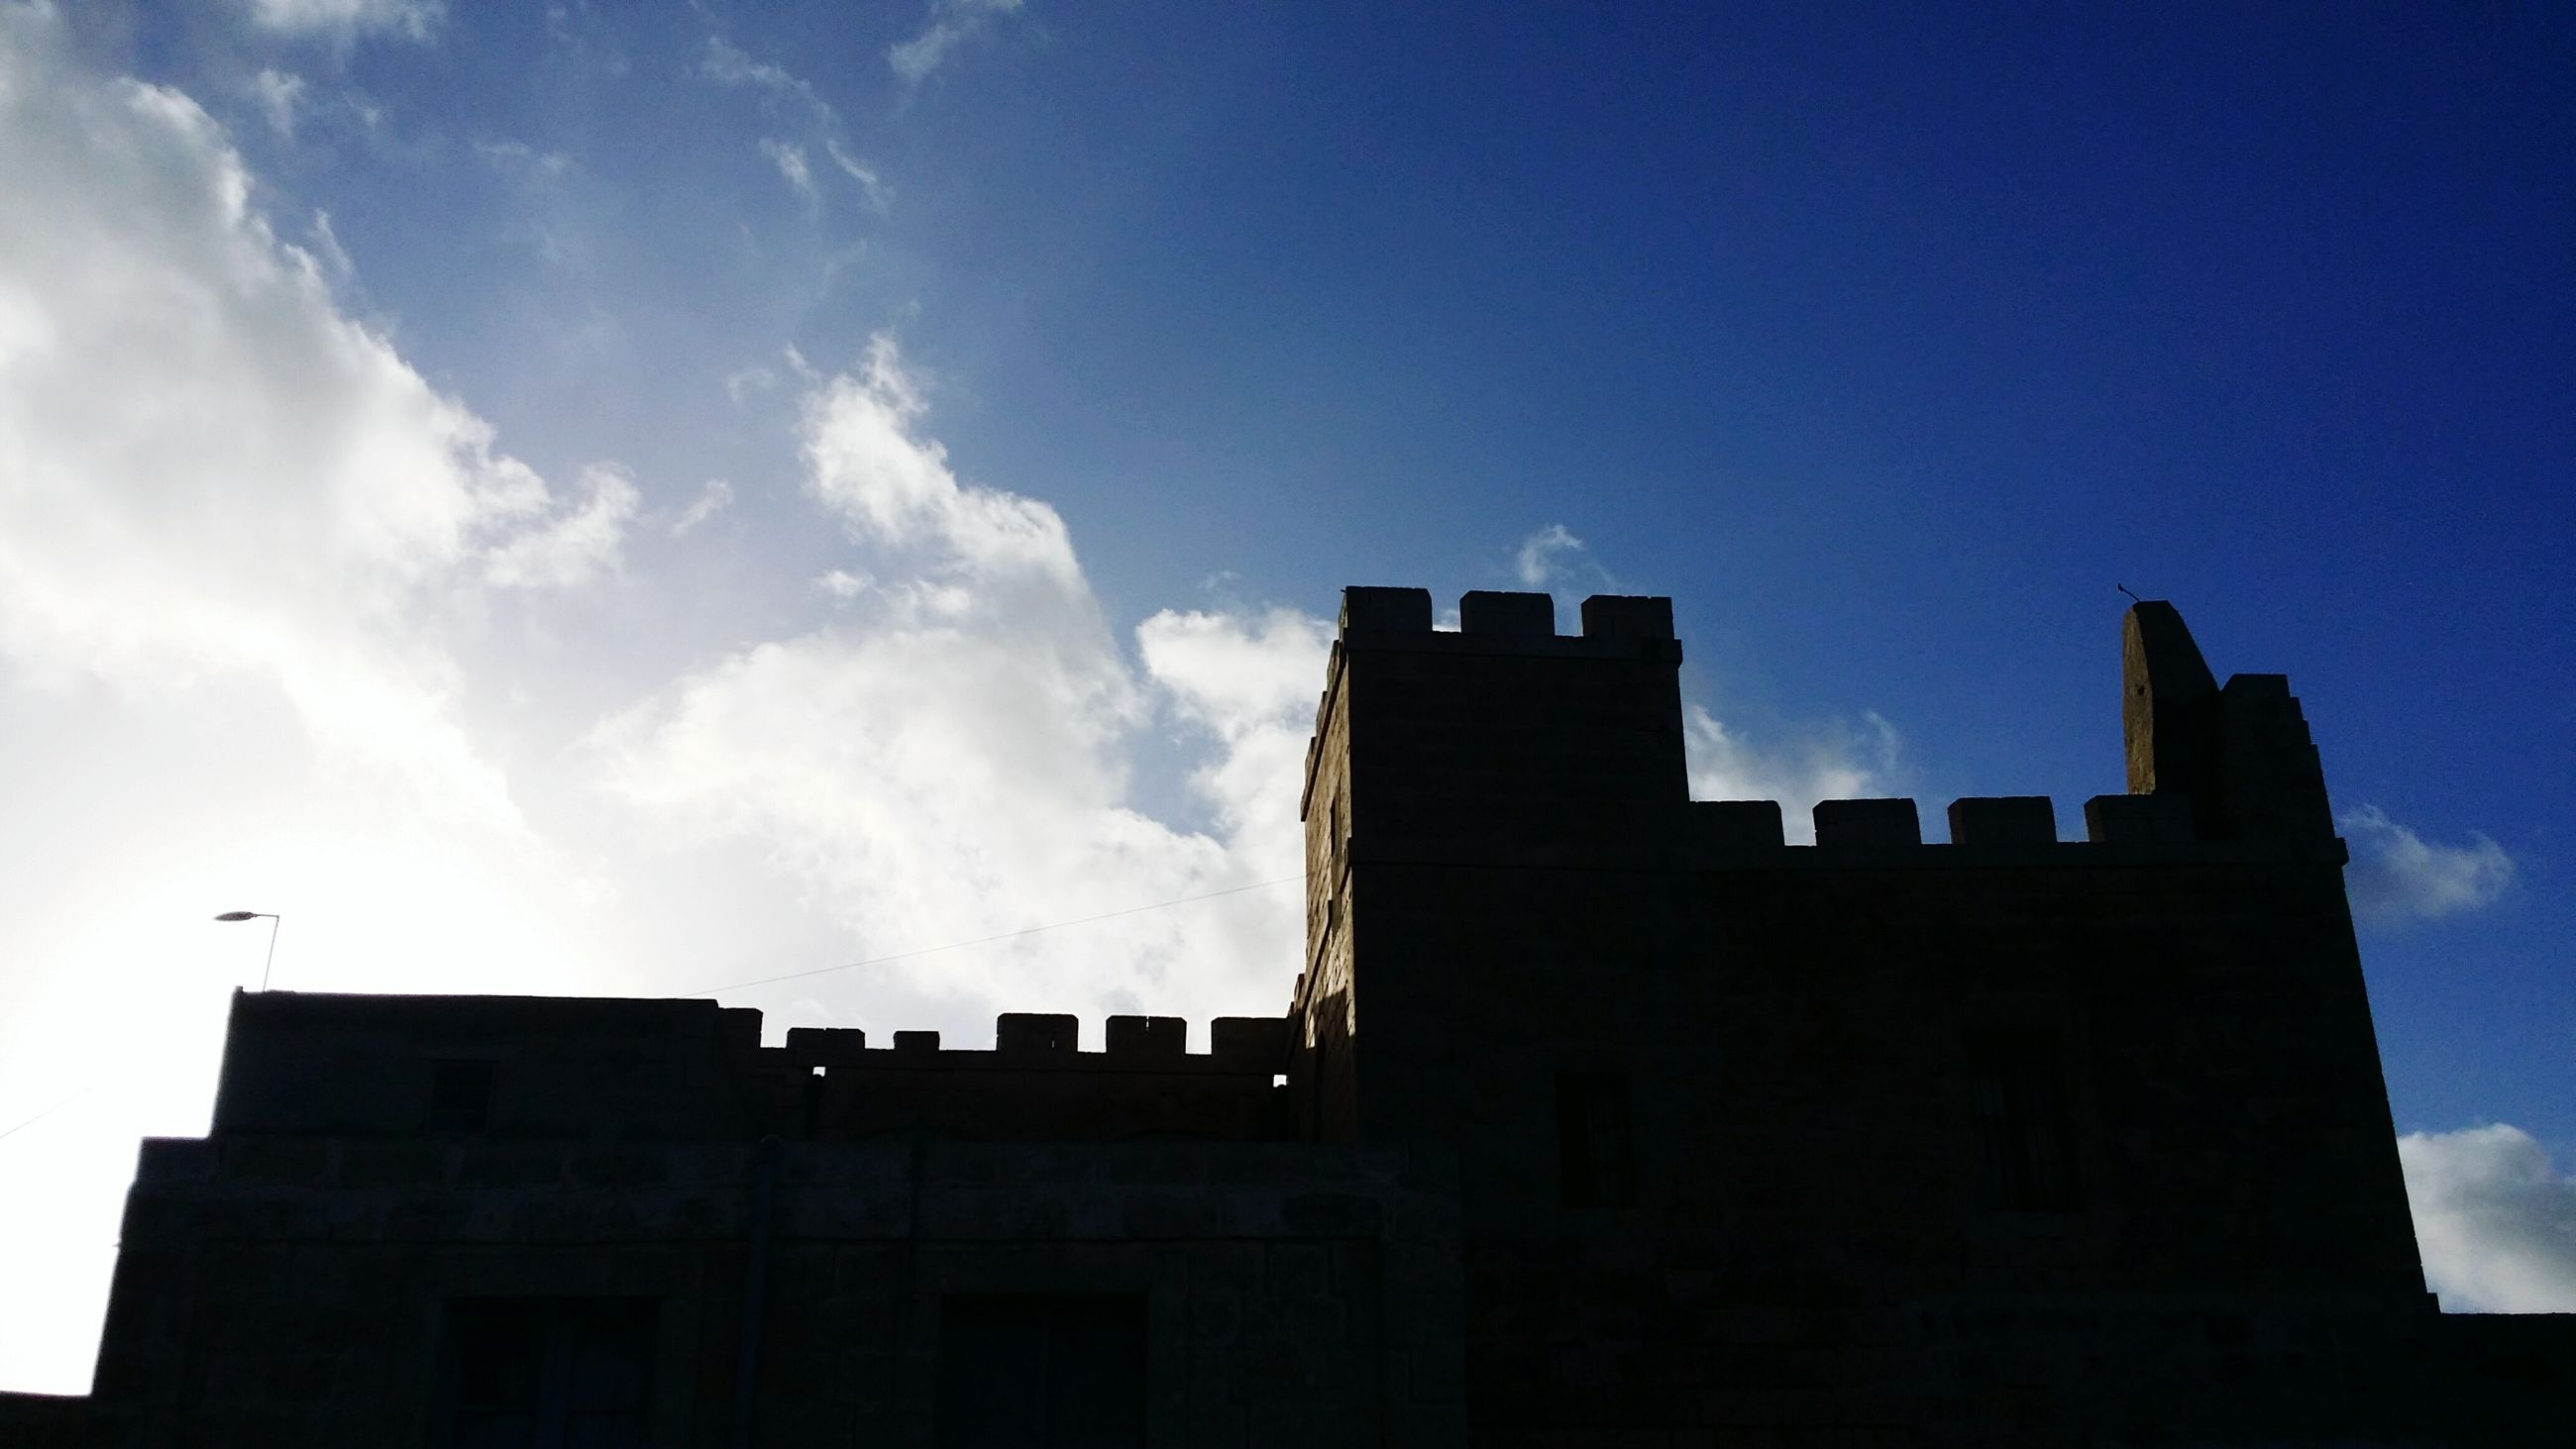 architecture, building exterior, built structure, low angle view, sky, blue, city, building, silhouette, cloud, cloud - sky, outdoors, copy space, no people, day, tower, dusk, high section, sunlight, tall - high